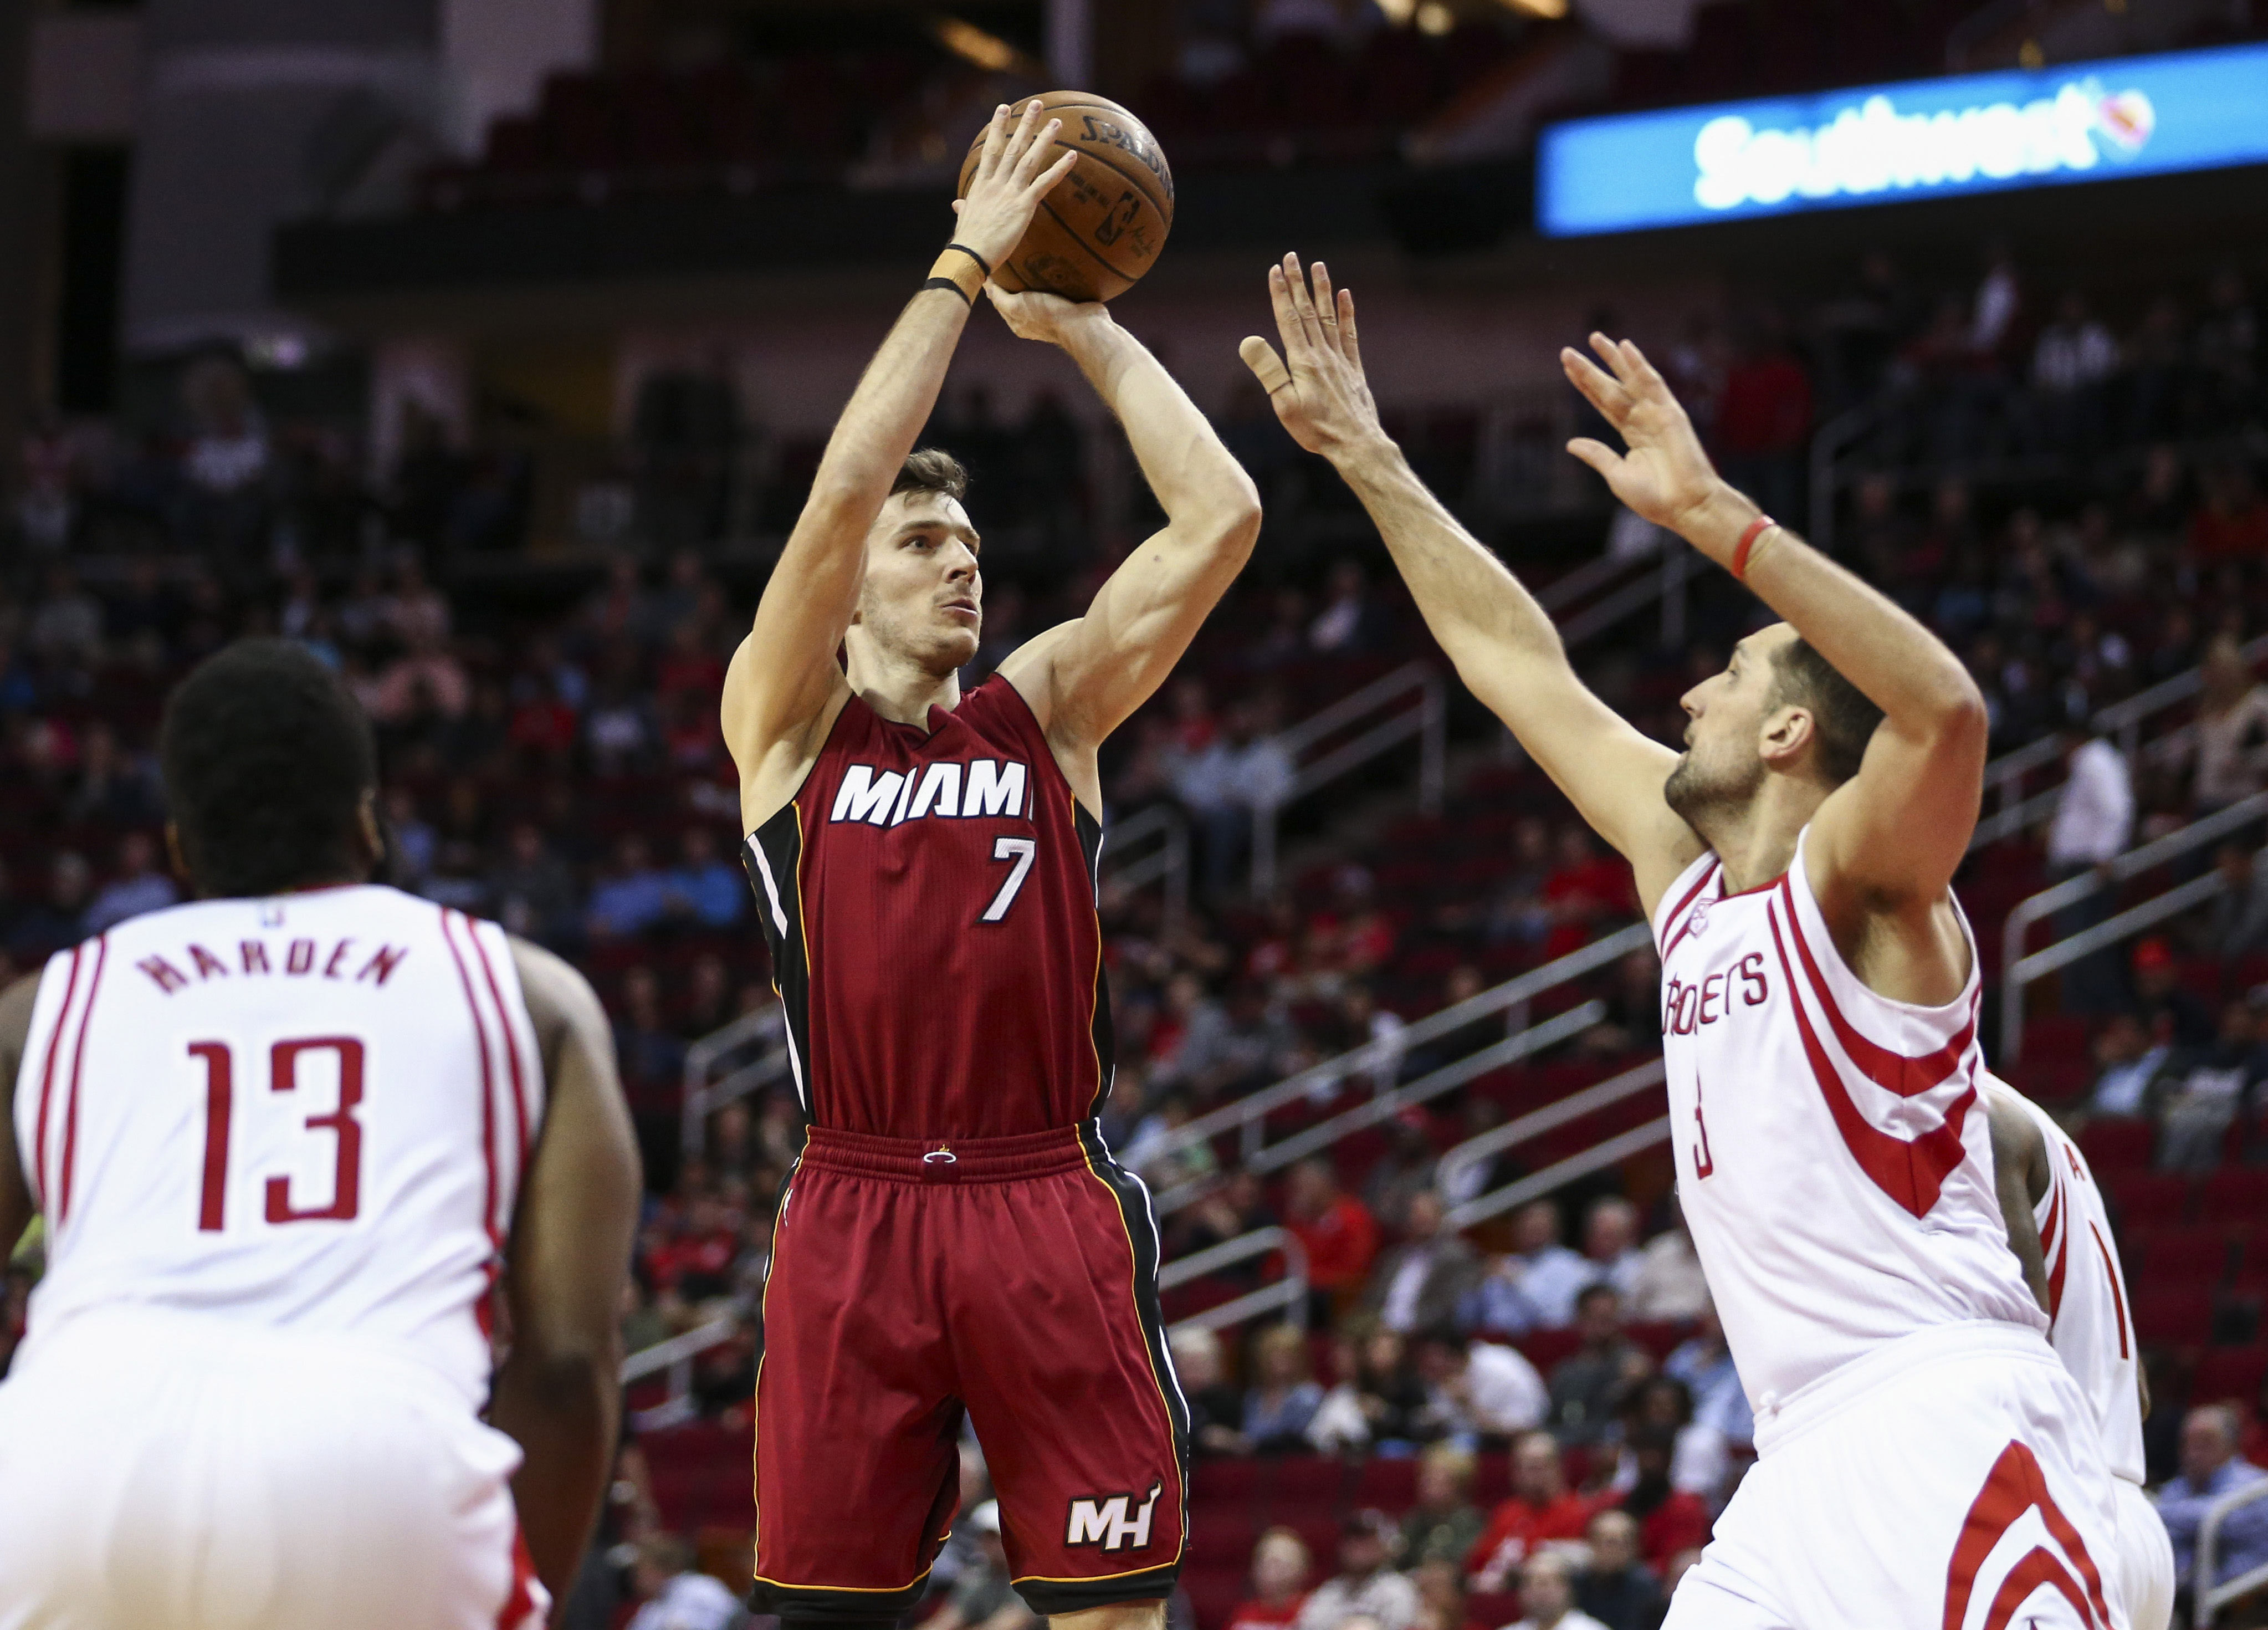 Miami Heat: Is the team's hot 3-point shooting for real?